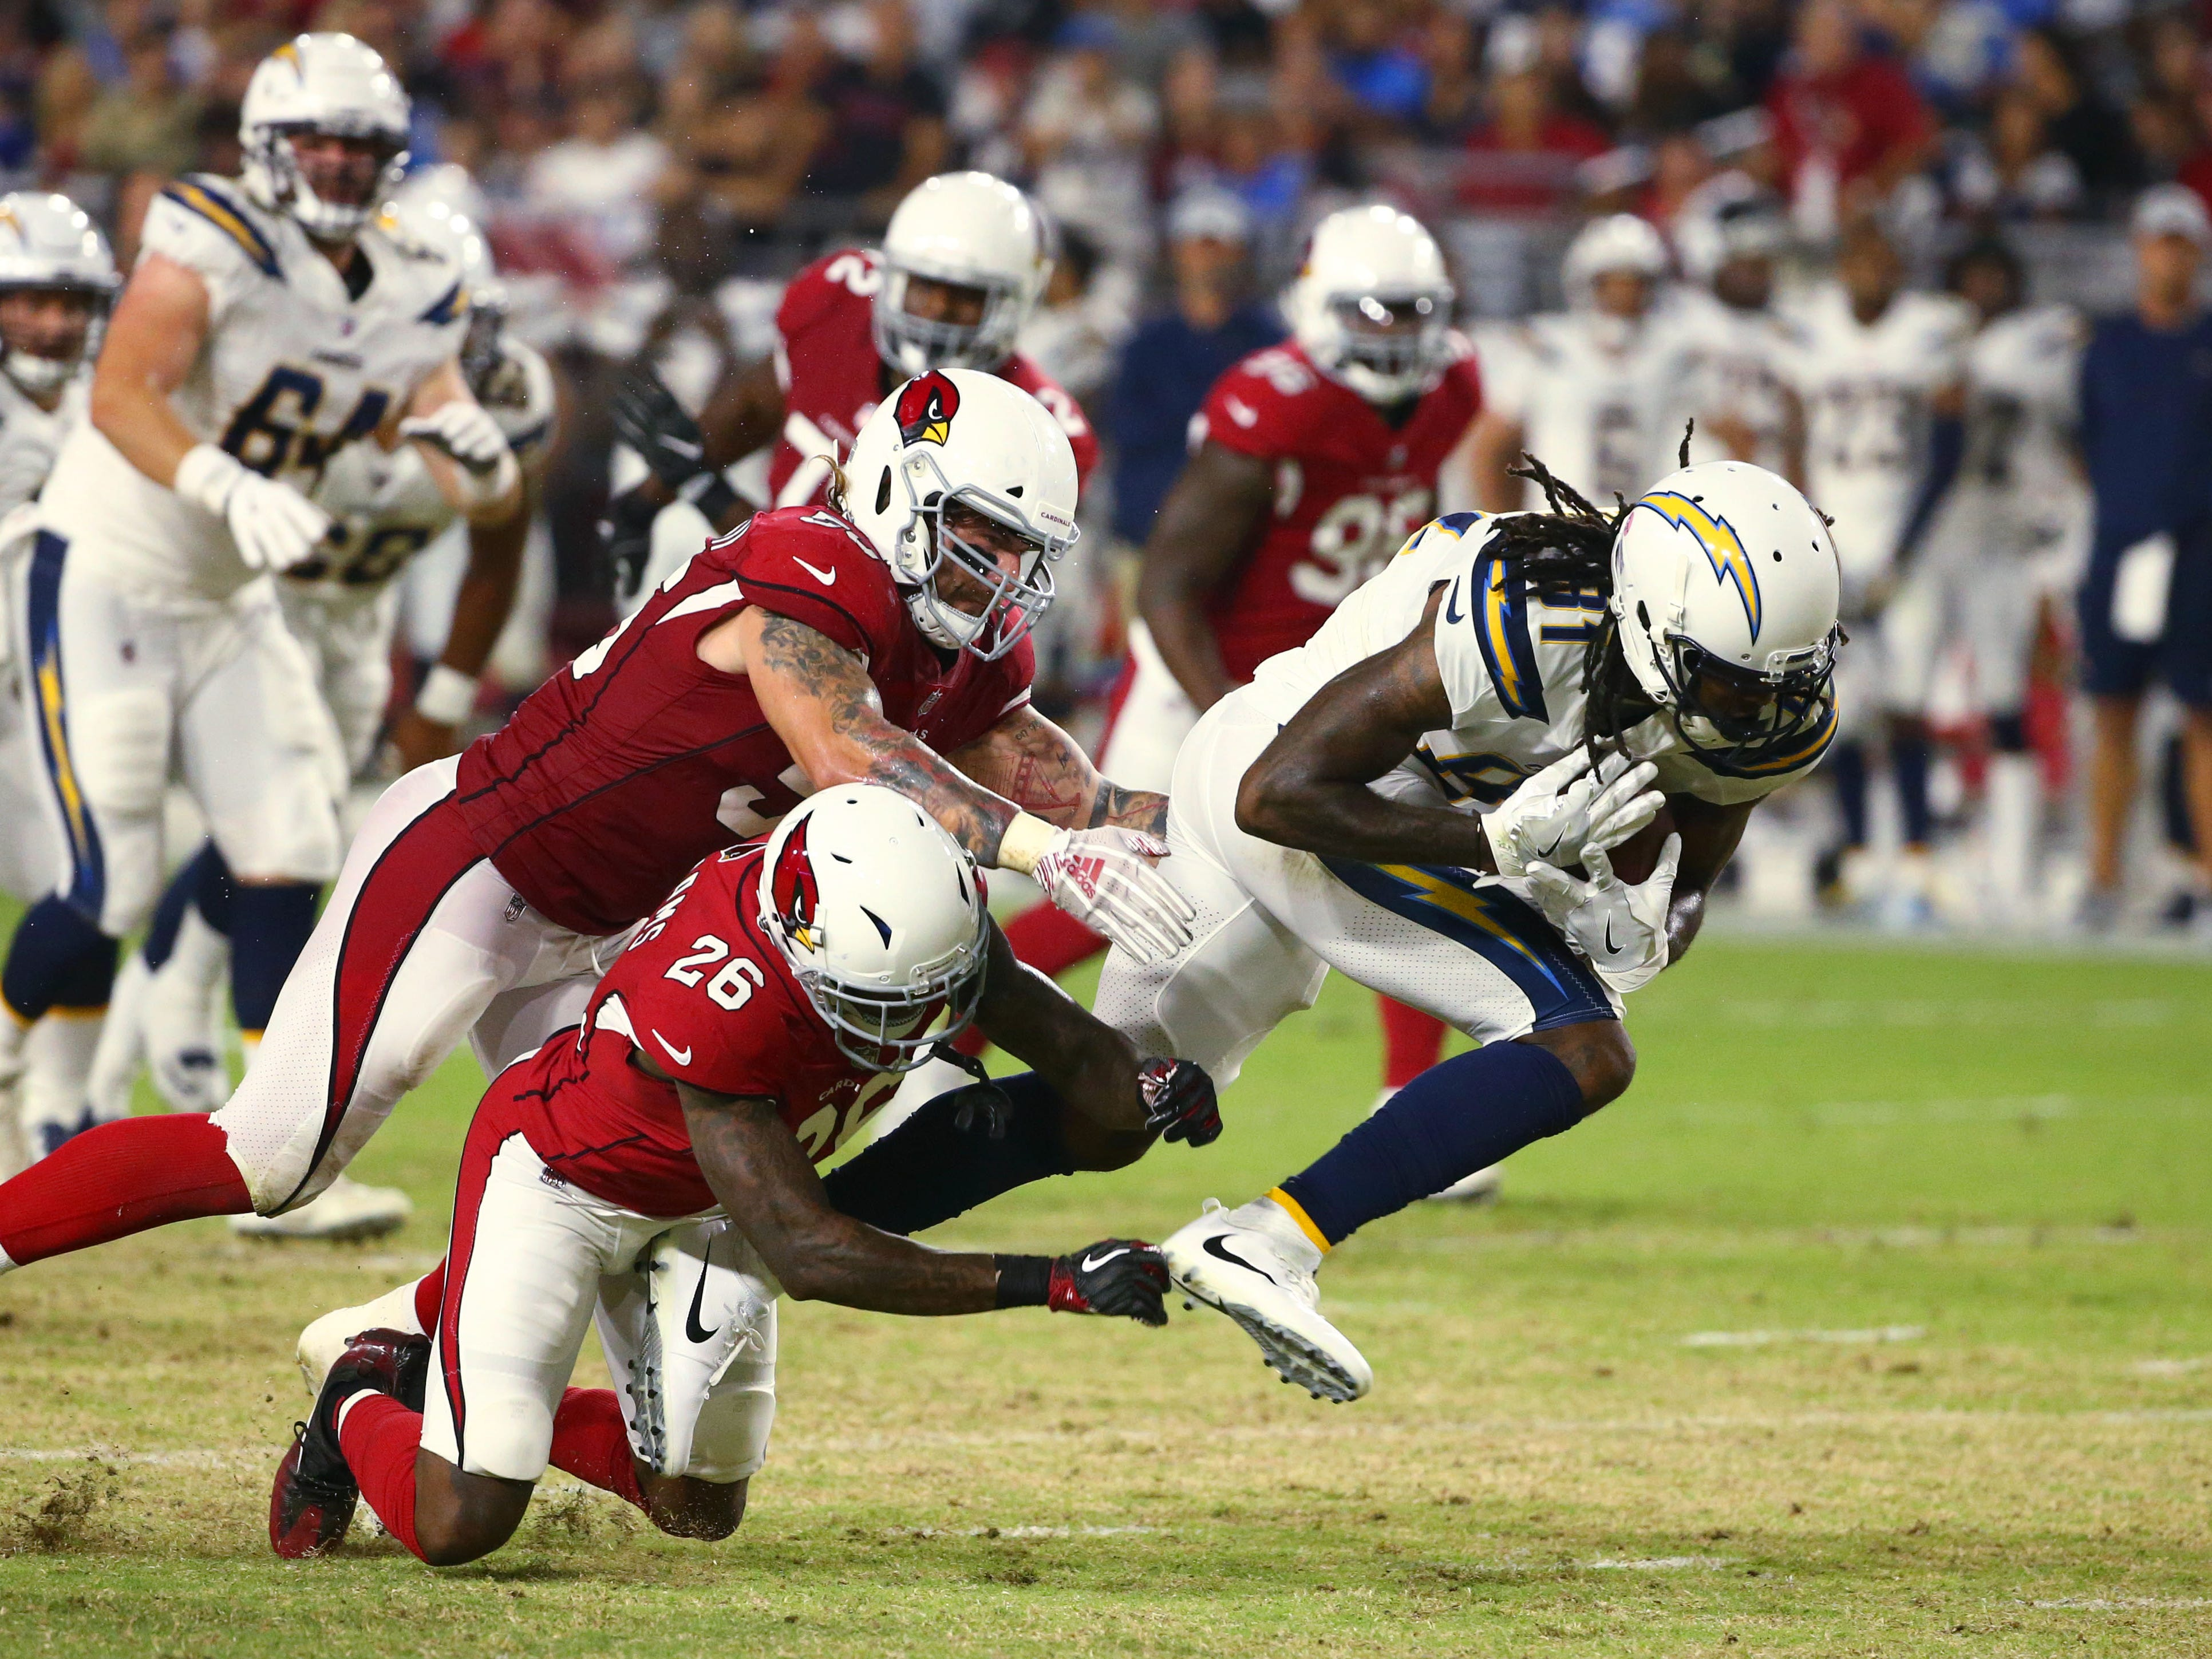 Arizona Cardinals 	Brandon Williams (26) tackles L.A. Chargers Mike Williams in the first half during a preseason NFL football game on Aug. 11, 2018 at University of Phoenix Stadium in Glendale, Ariz.